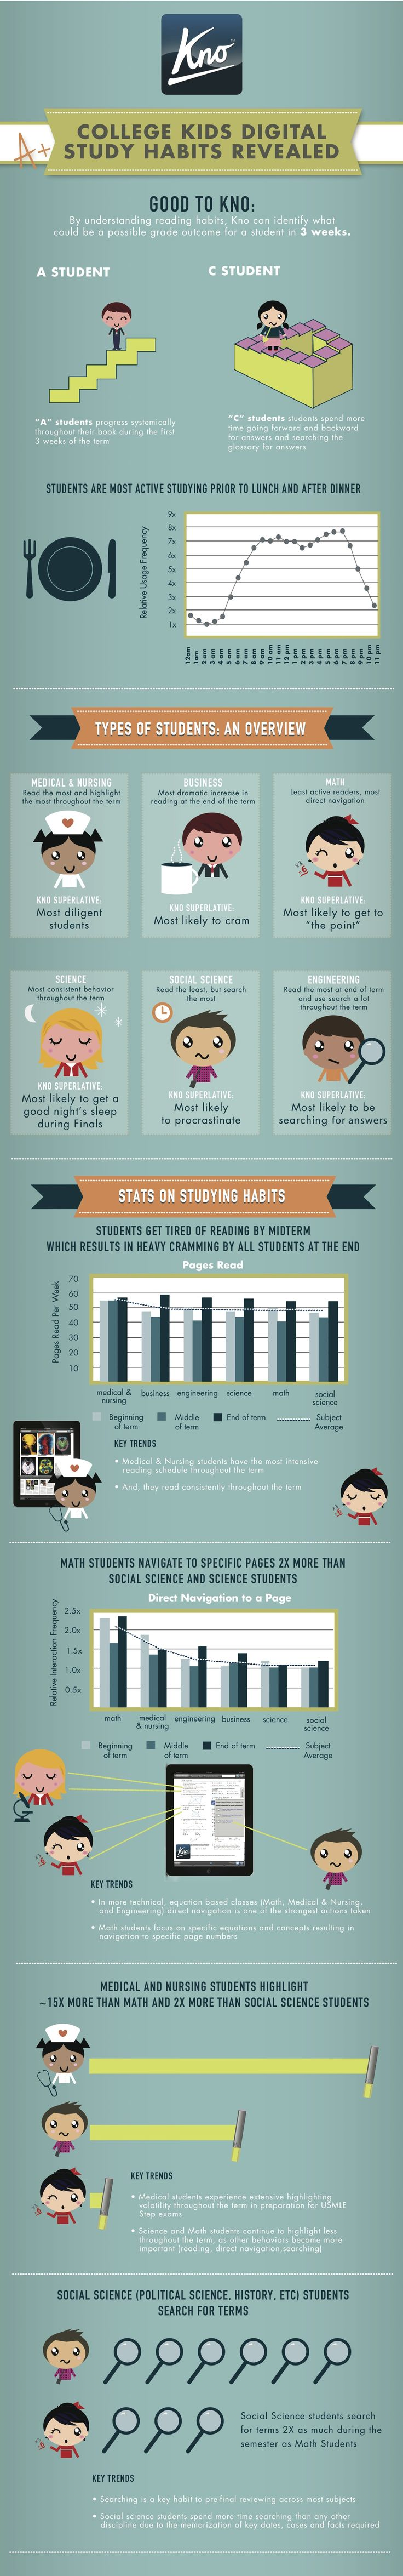 Digital Study Habits of College Students...07.11.12